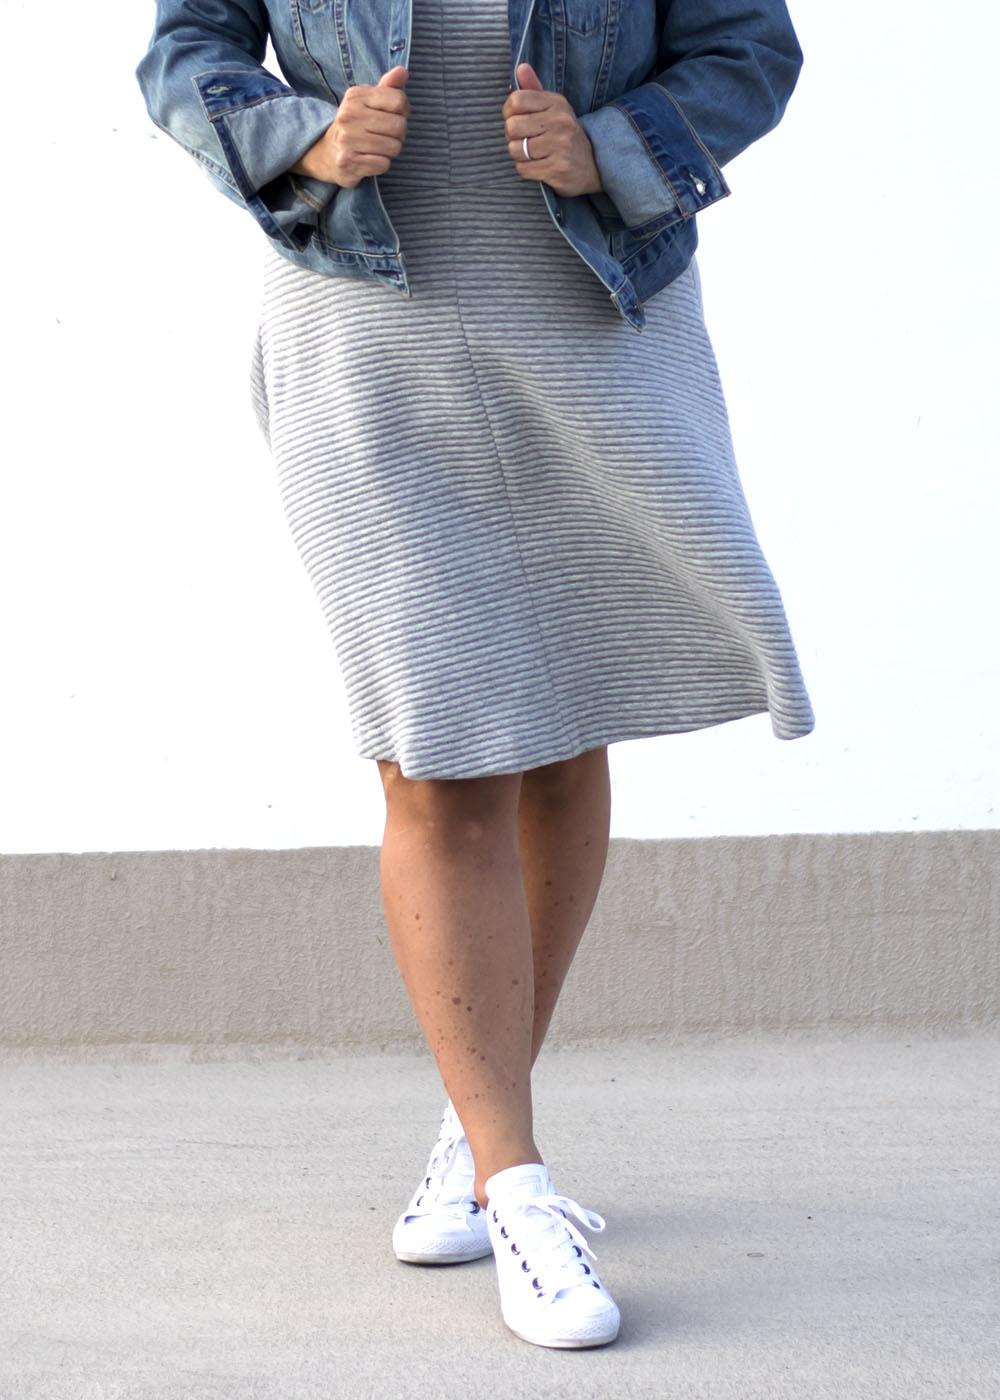 Casual Outfit Los Angeles Fashion Street Style Blogger Personal Stylist Grey Aline Dress